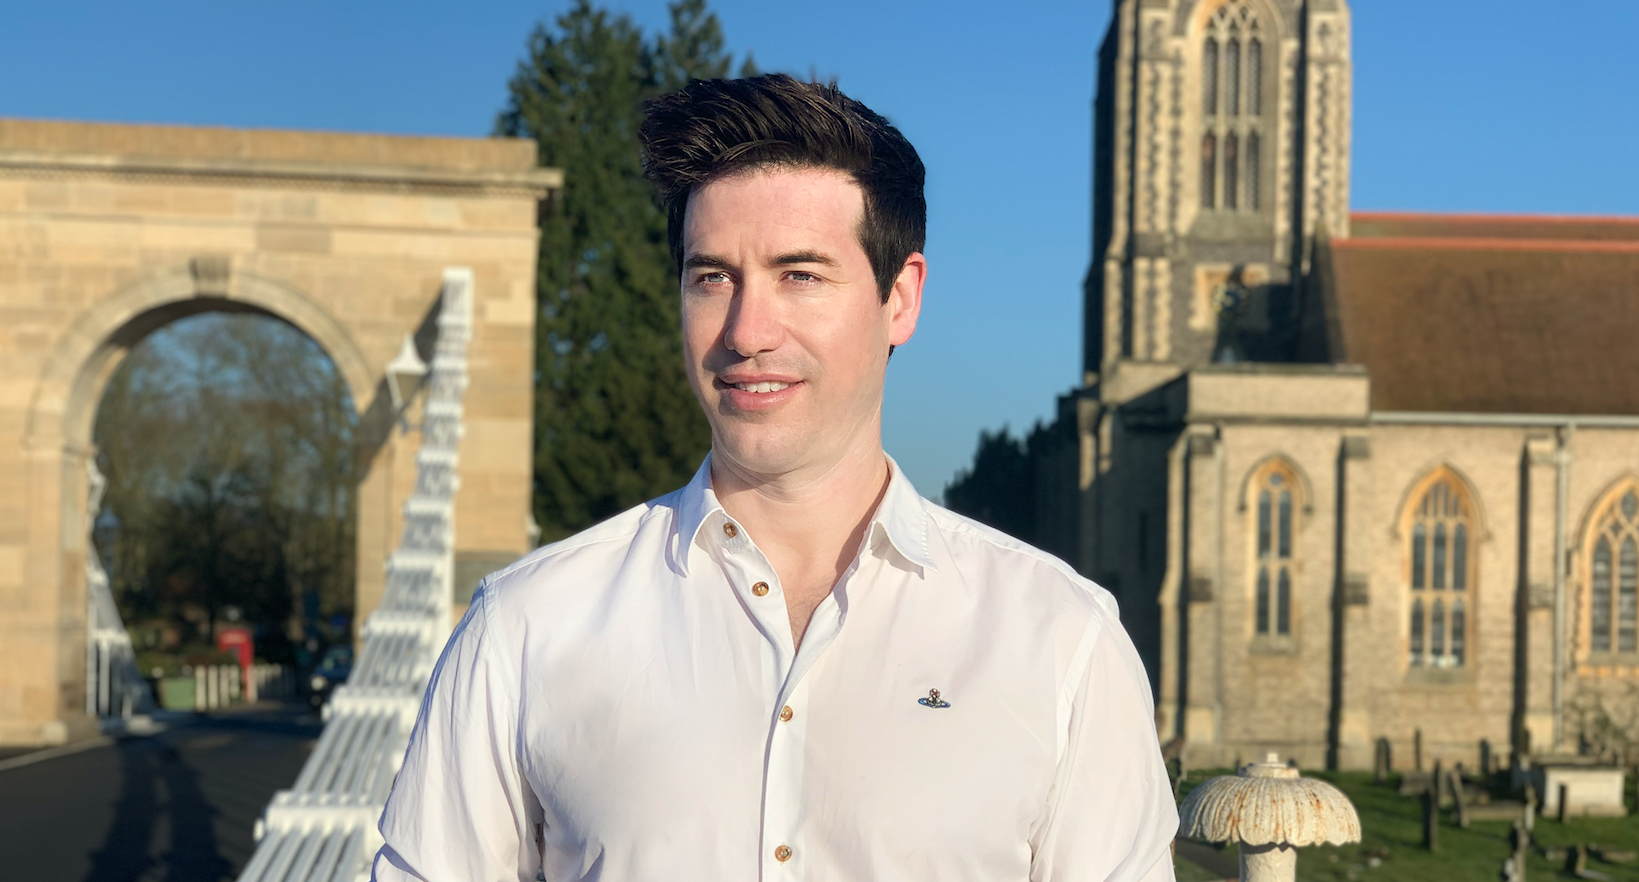 Ben Littlewood profile picture, founder of Moveli